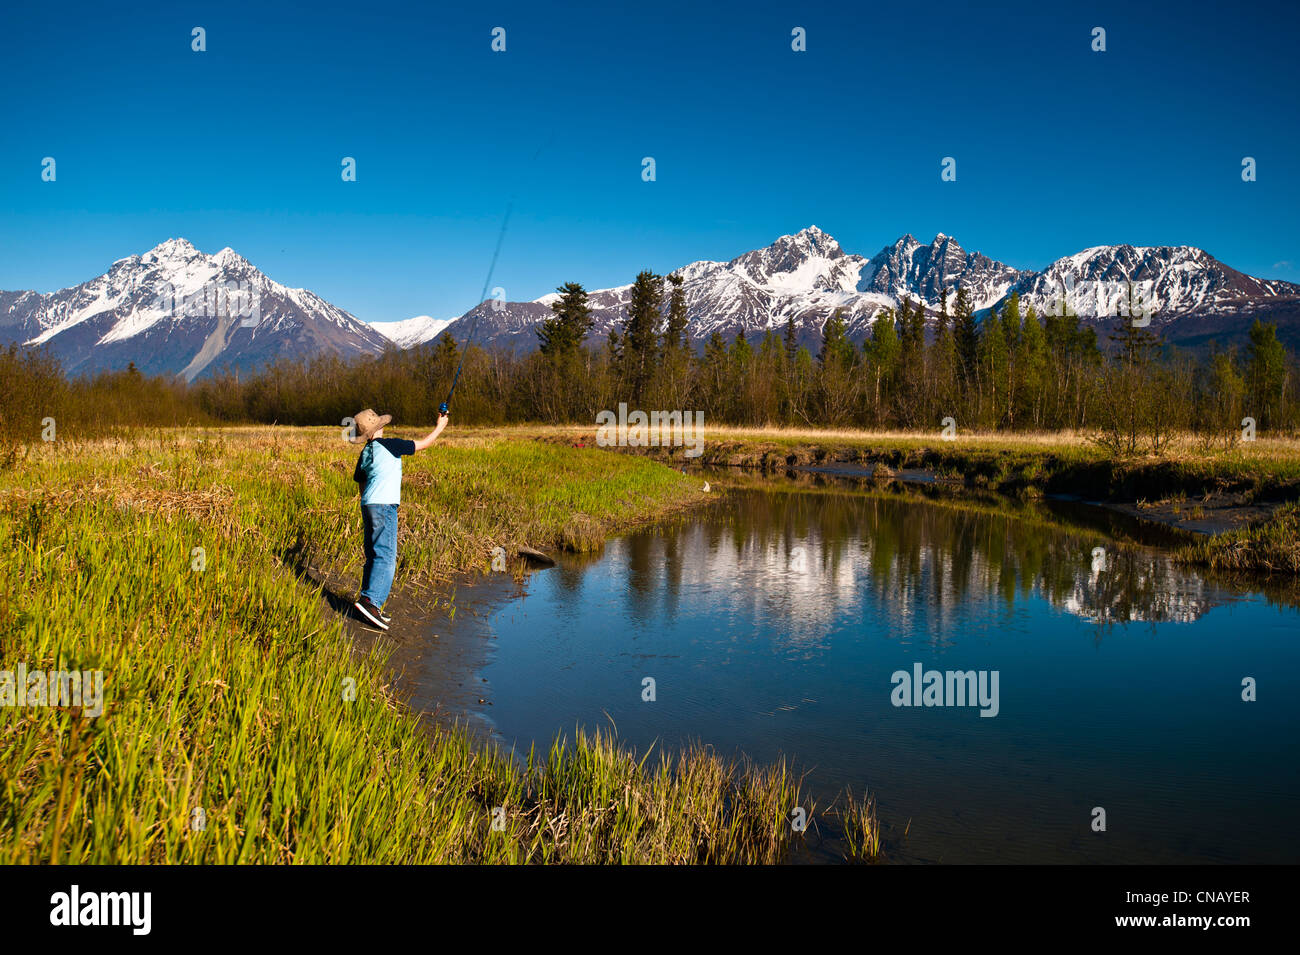 A young boy fishing on Rabbit Slough on a sunny spring day in the Matanuska-Susitna Valley, Southcentral Alaska - Stock Image